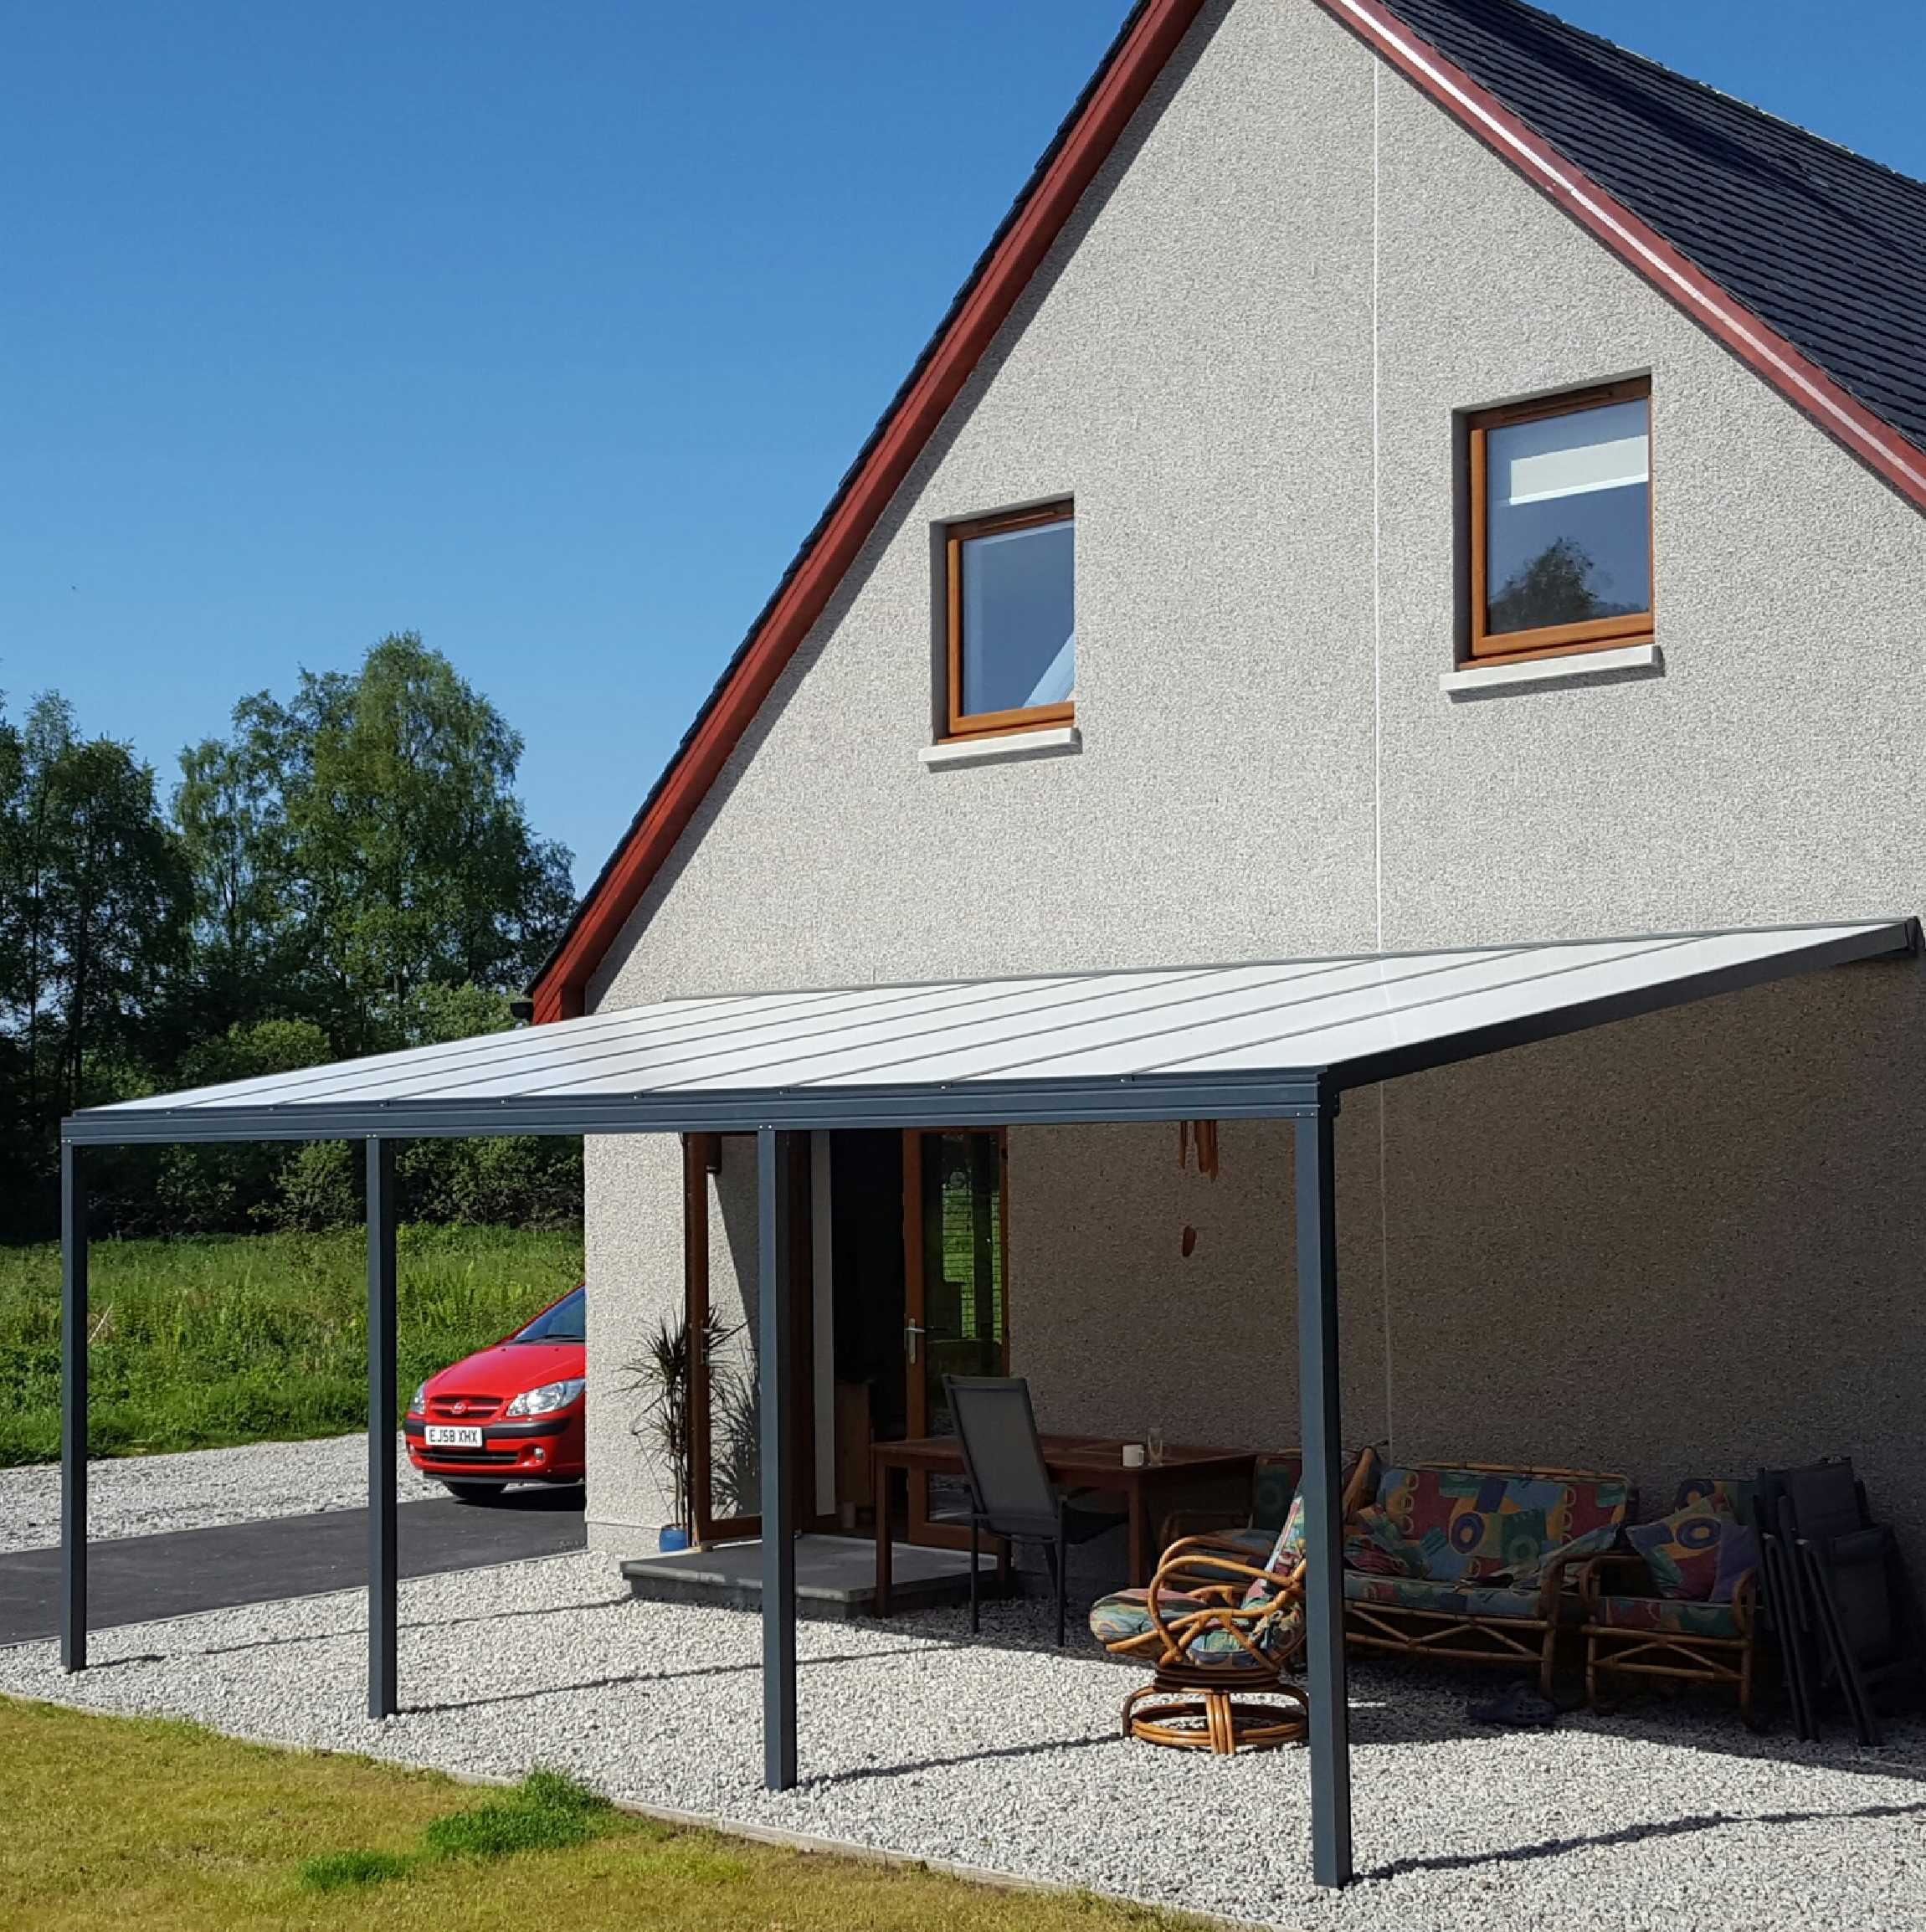 Great selection of Omega Smart Lean-To Canopy, Anthracite Grey, 16mm Polycarbonate Glazing - 6.0m (W) x 2.5m (P), (3) Supporting Posts